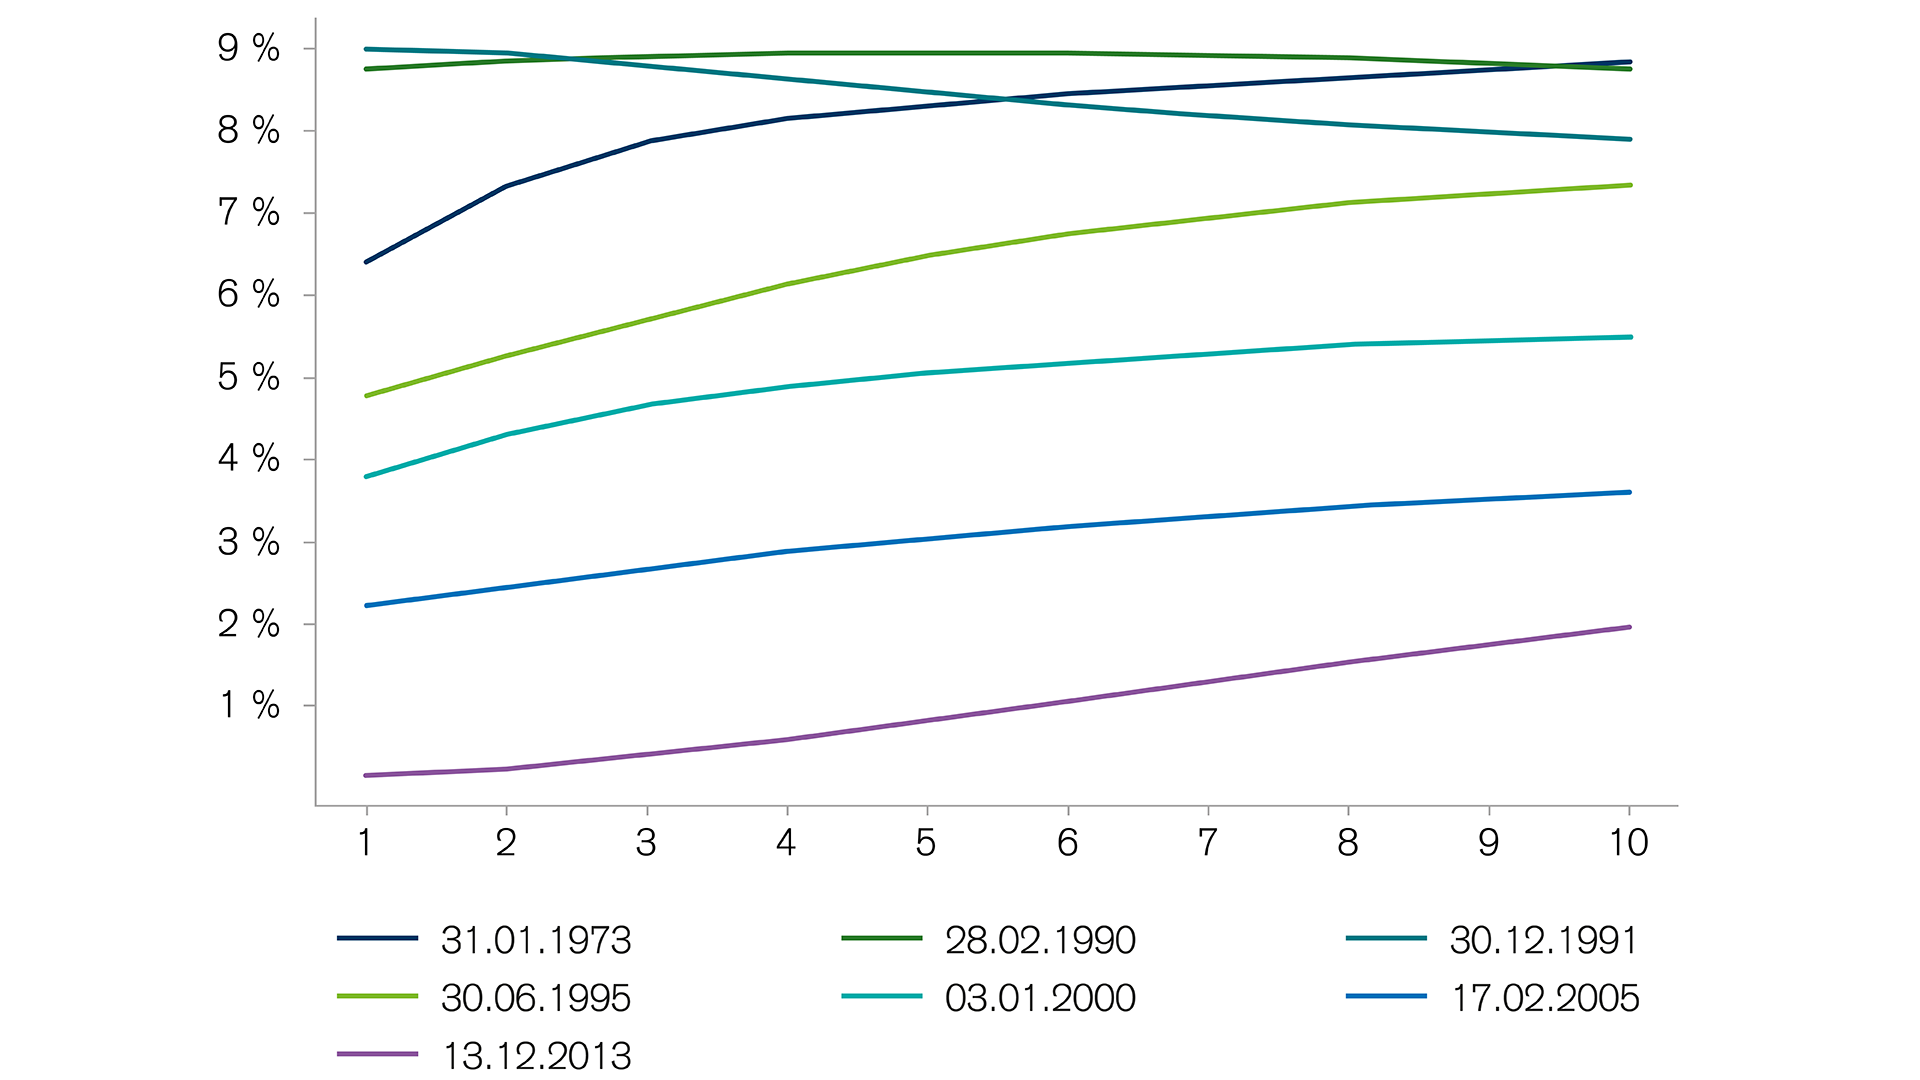 yield-curves-of-the-deutsche-bundesbank